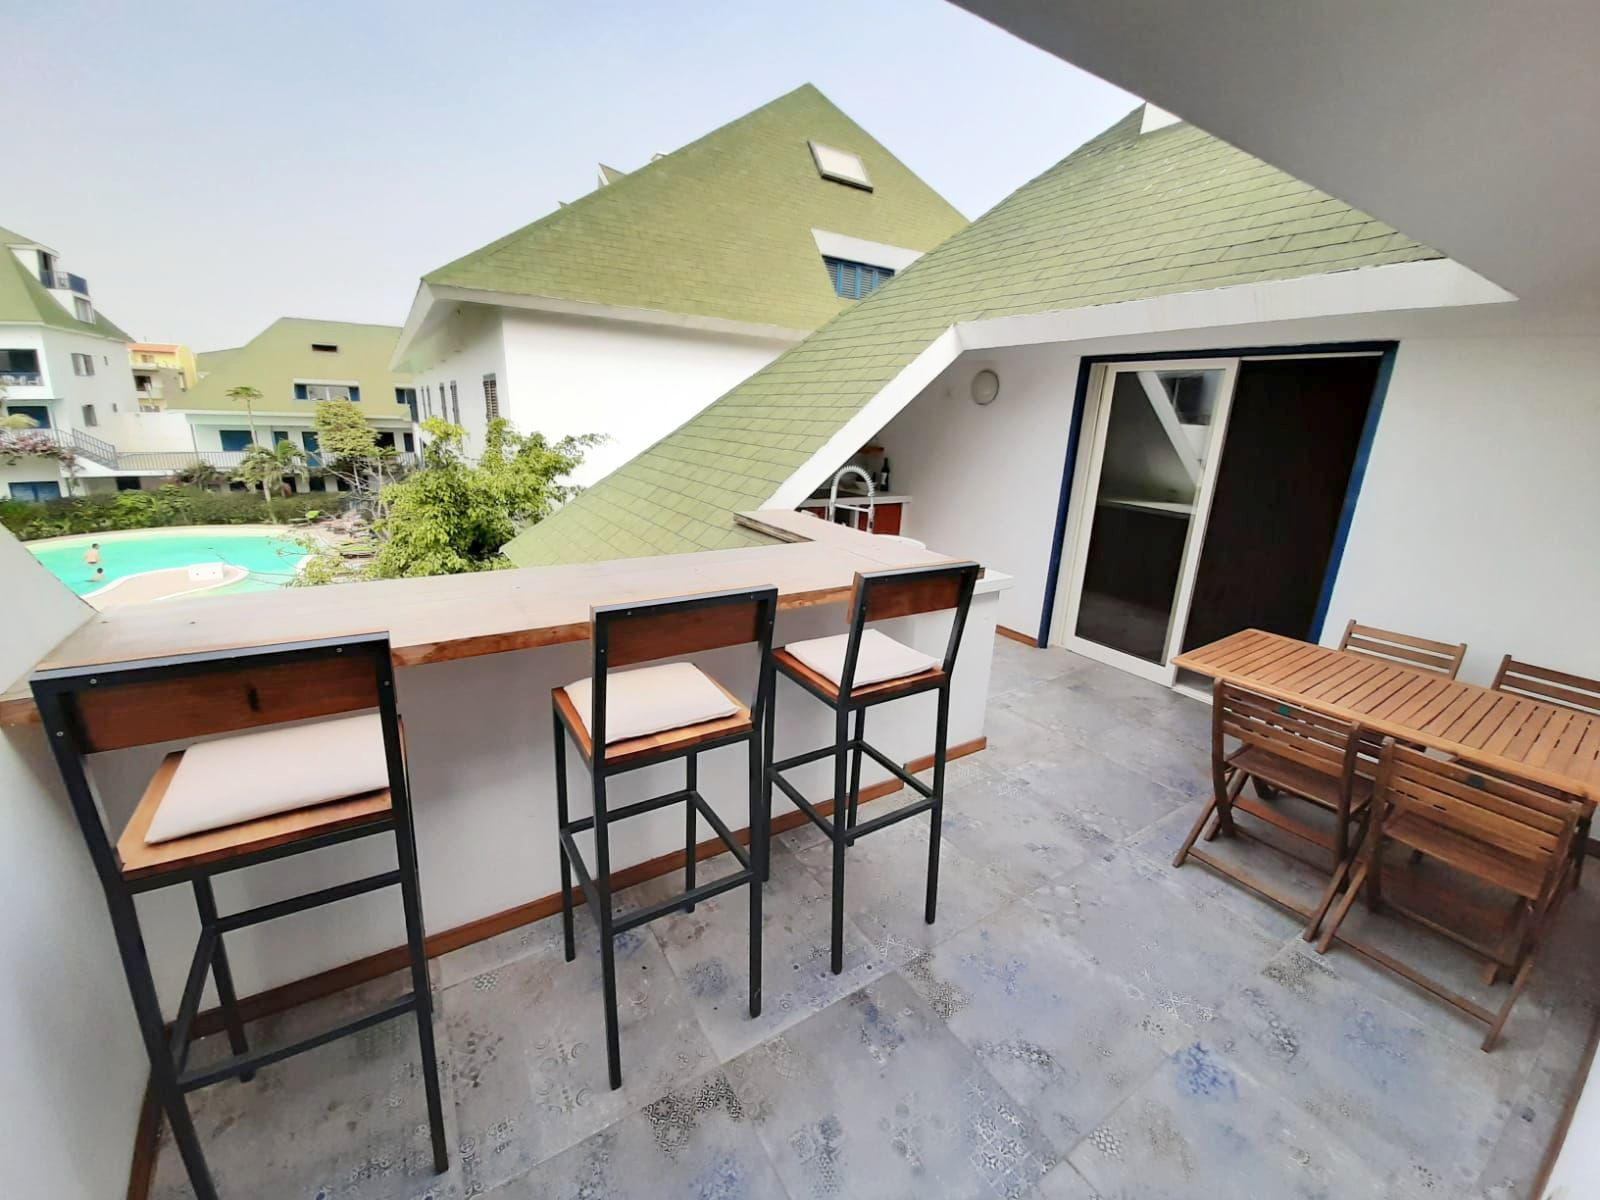 outside kitchen and bar with pool view, beach house for rent cabo verde, cape verde